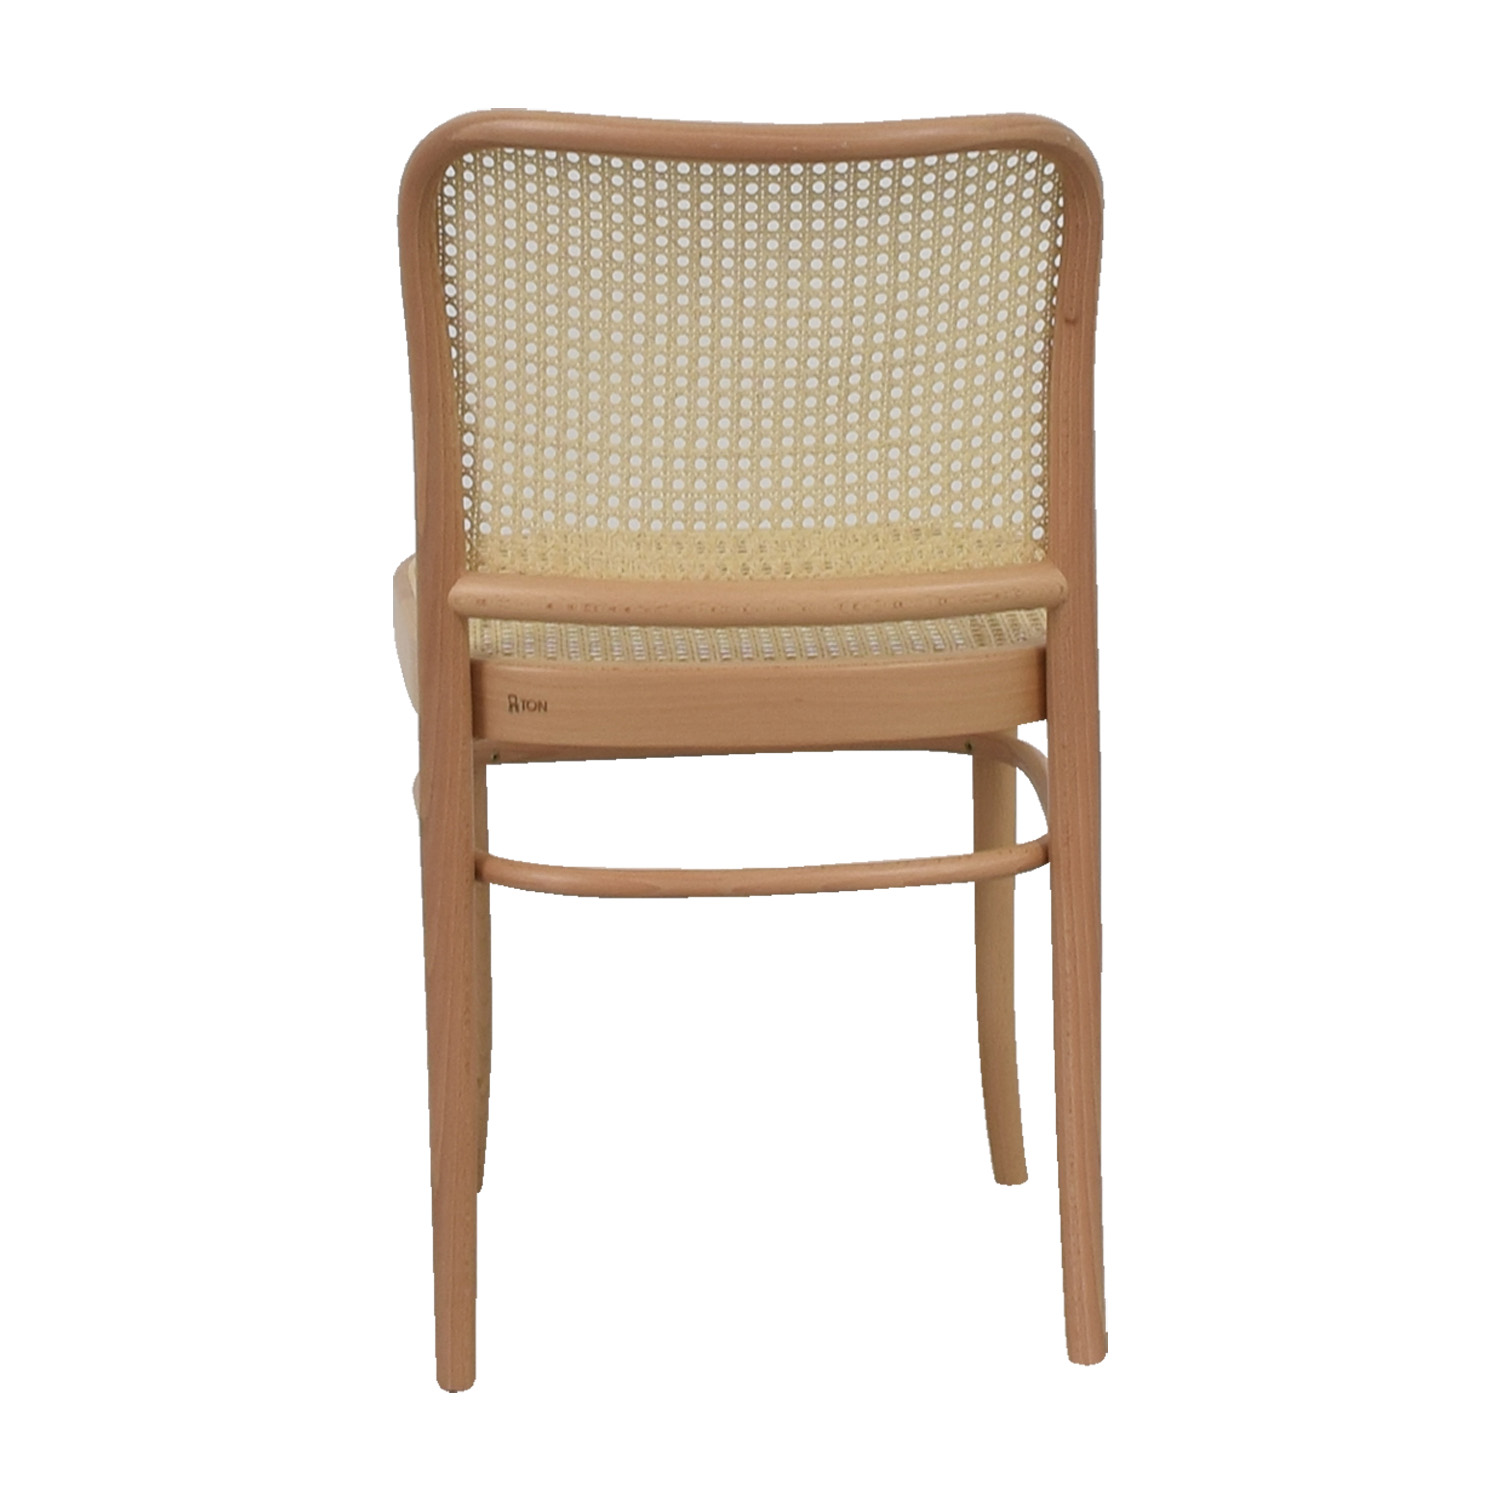 Stupendous 79 Off Design Within Reach Design Within Reach Hoffman Natural Side Chair Chairs Machost Co Dining Chair Design Ideas Machostcouk